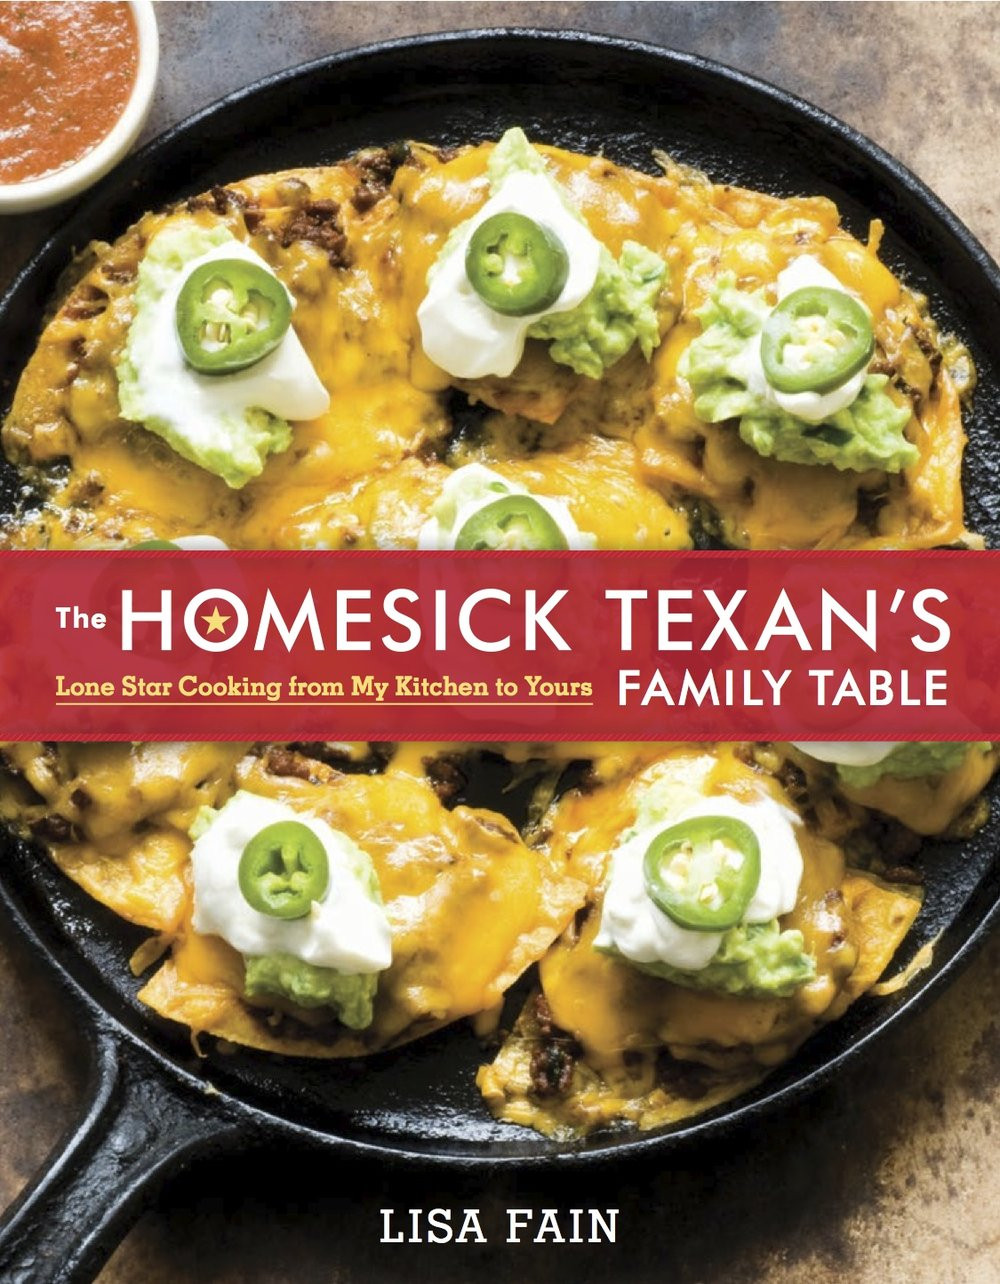 Fain_Homesick Texan rev (1) copy.jpg